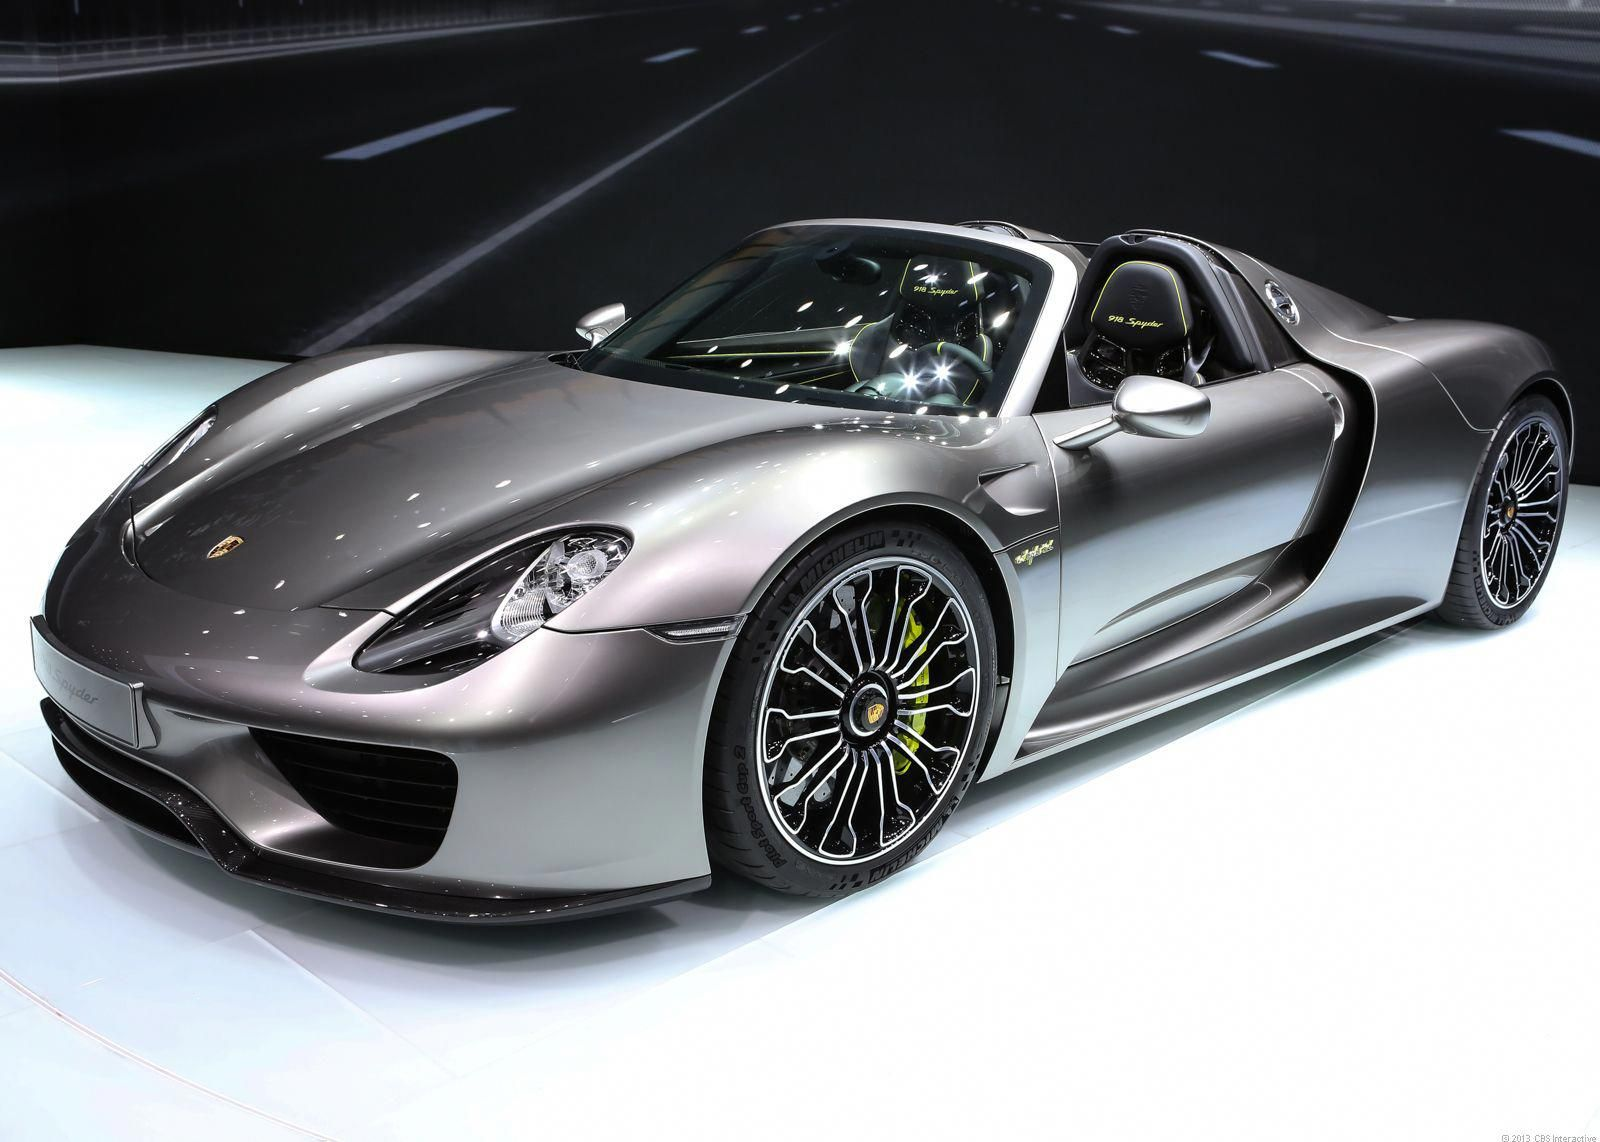 2014 Porsche 918 Spyder Cost 845 000 0 To 60 Mph In 3 1 Seconds Top Speed Of 199 Mph Nurburgring Lap Time Of 7 Minute Expensive Cars Porsche 918 Super Cars